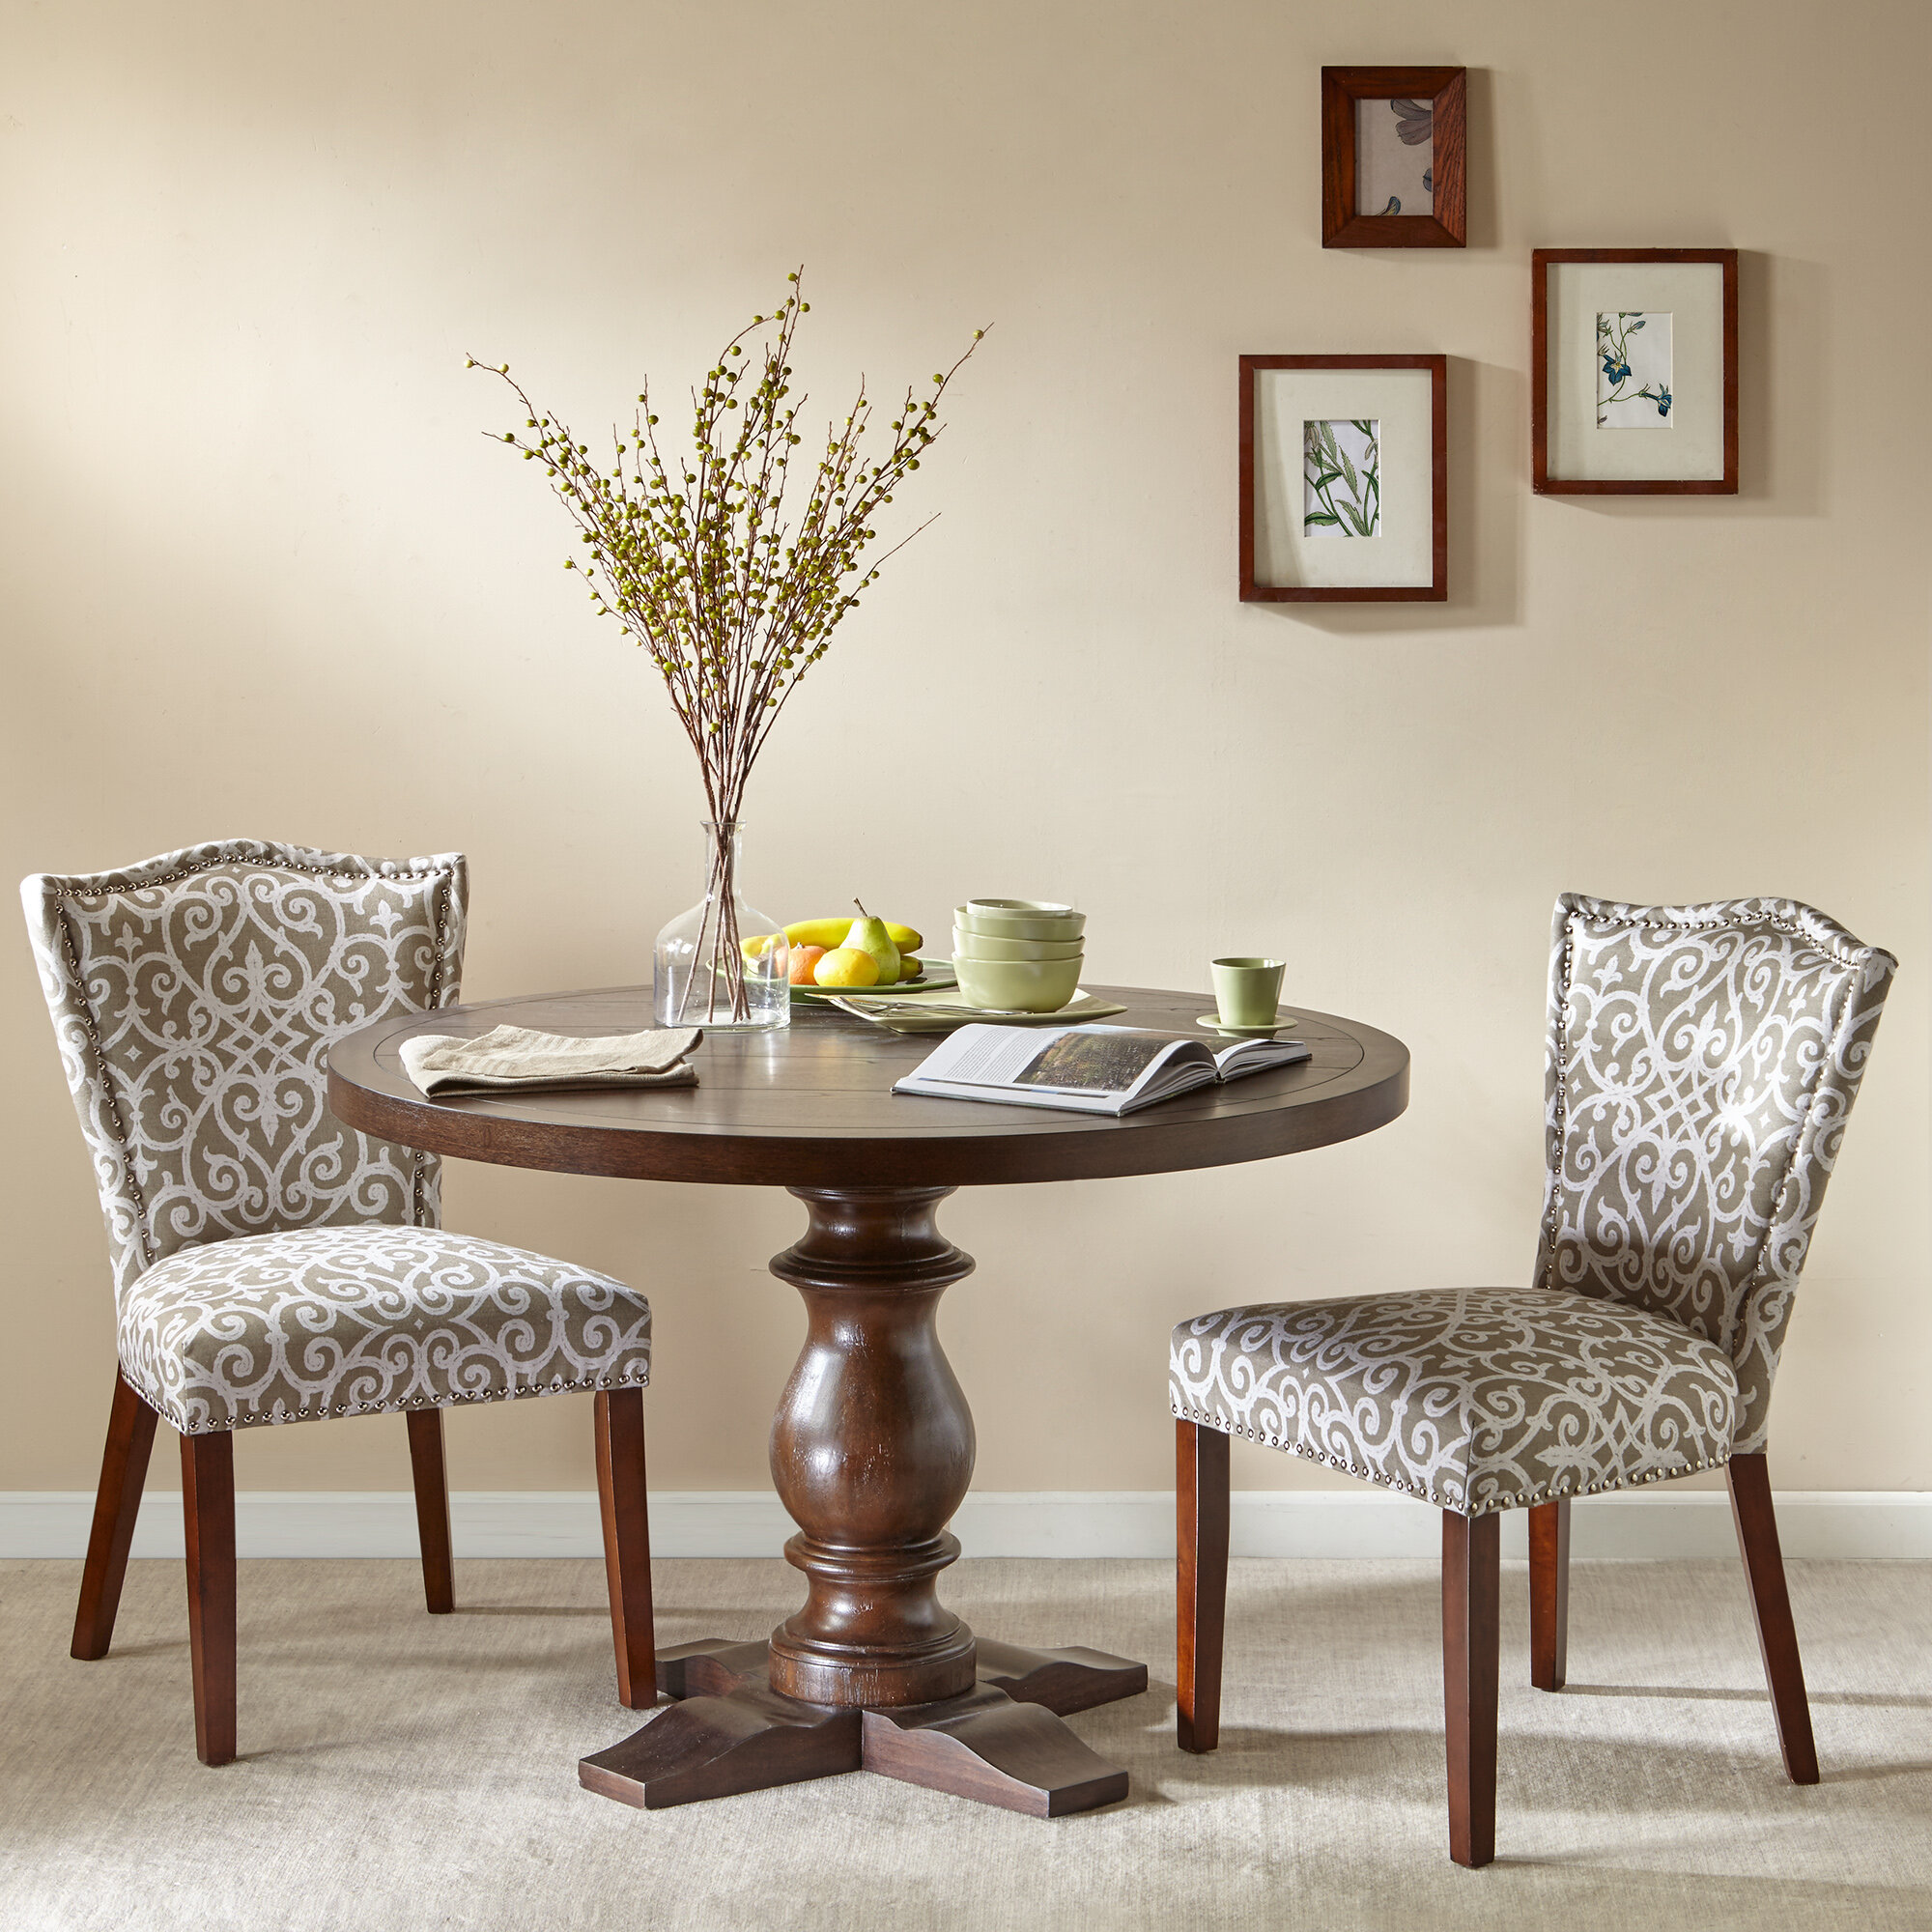 darby home co booth dining table | wayfair Booth Dining Table